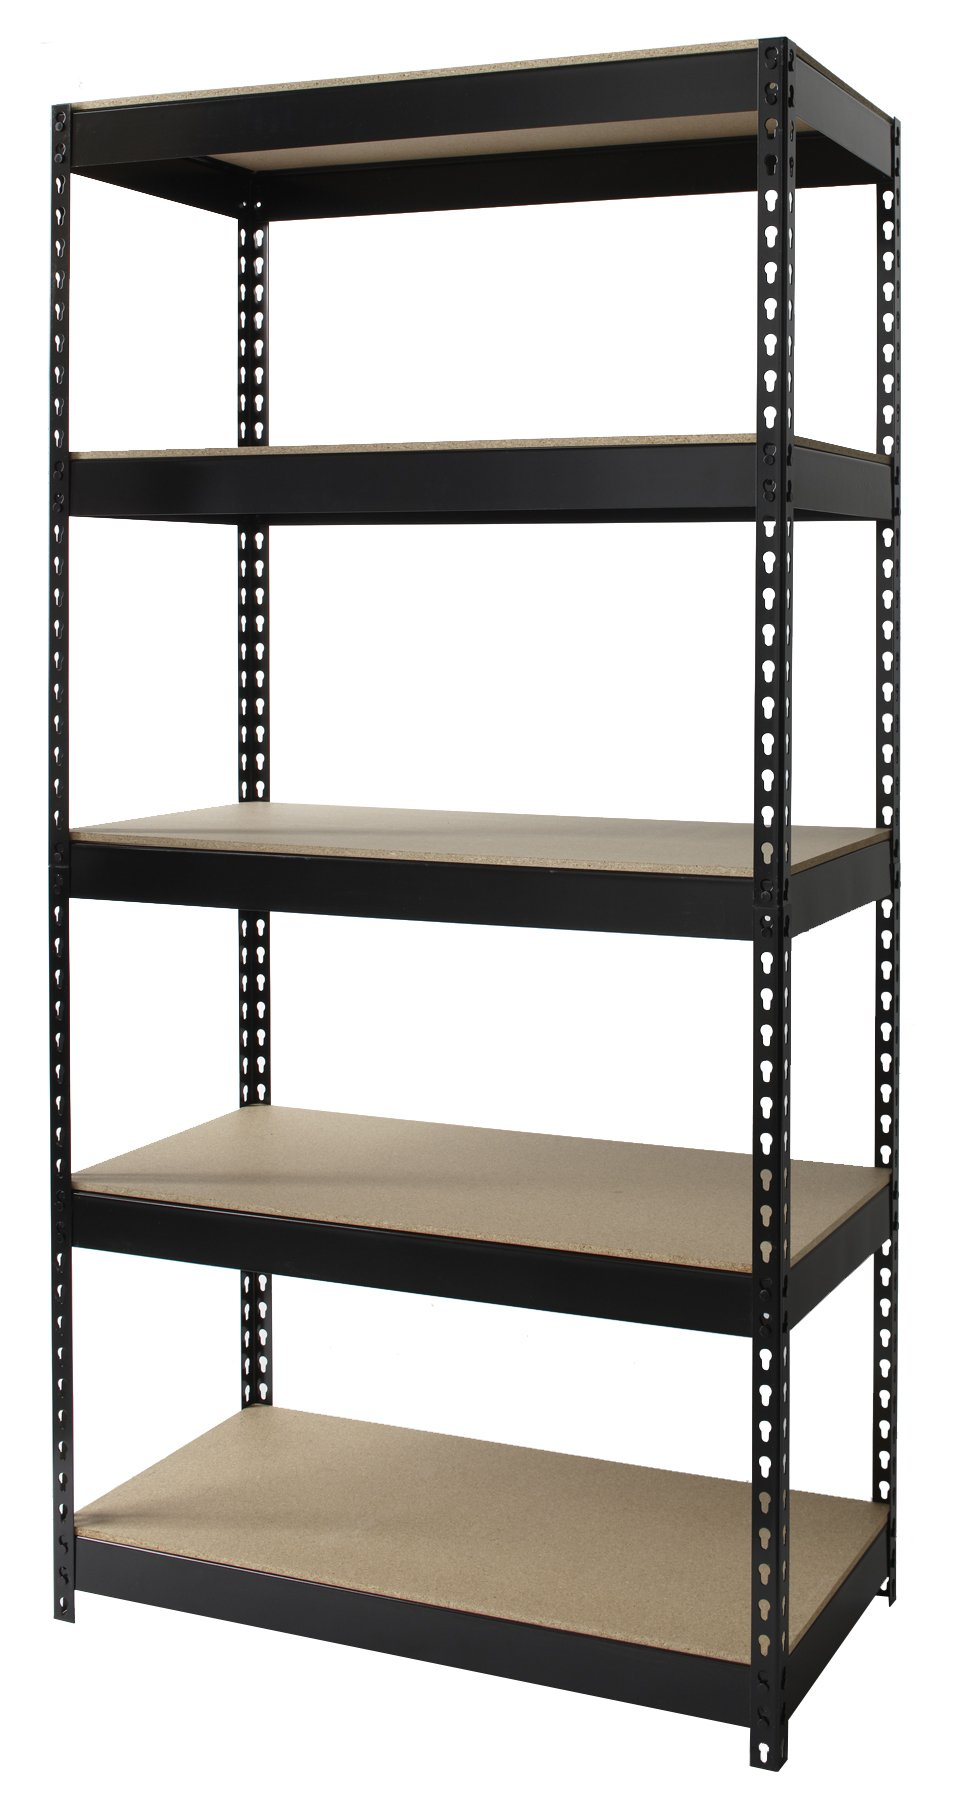 Office Dimensions Riveted Steel Shelving 5-Shelf Unit, 36'' W x 18'' D x 72'' H, Black by Office Dimensions (Image #1)